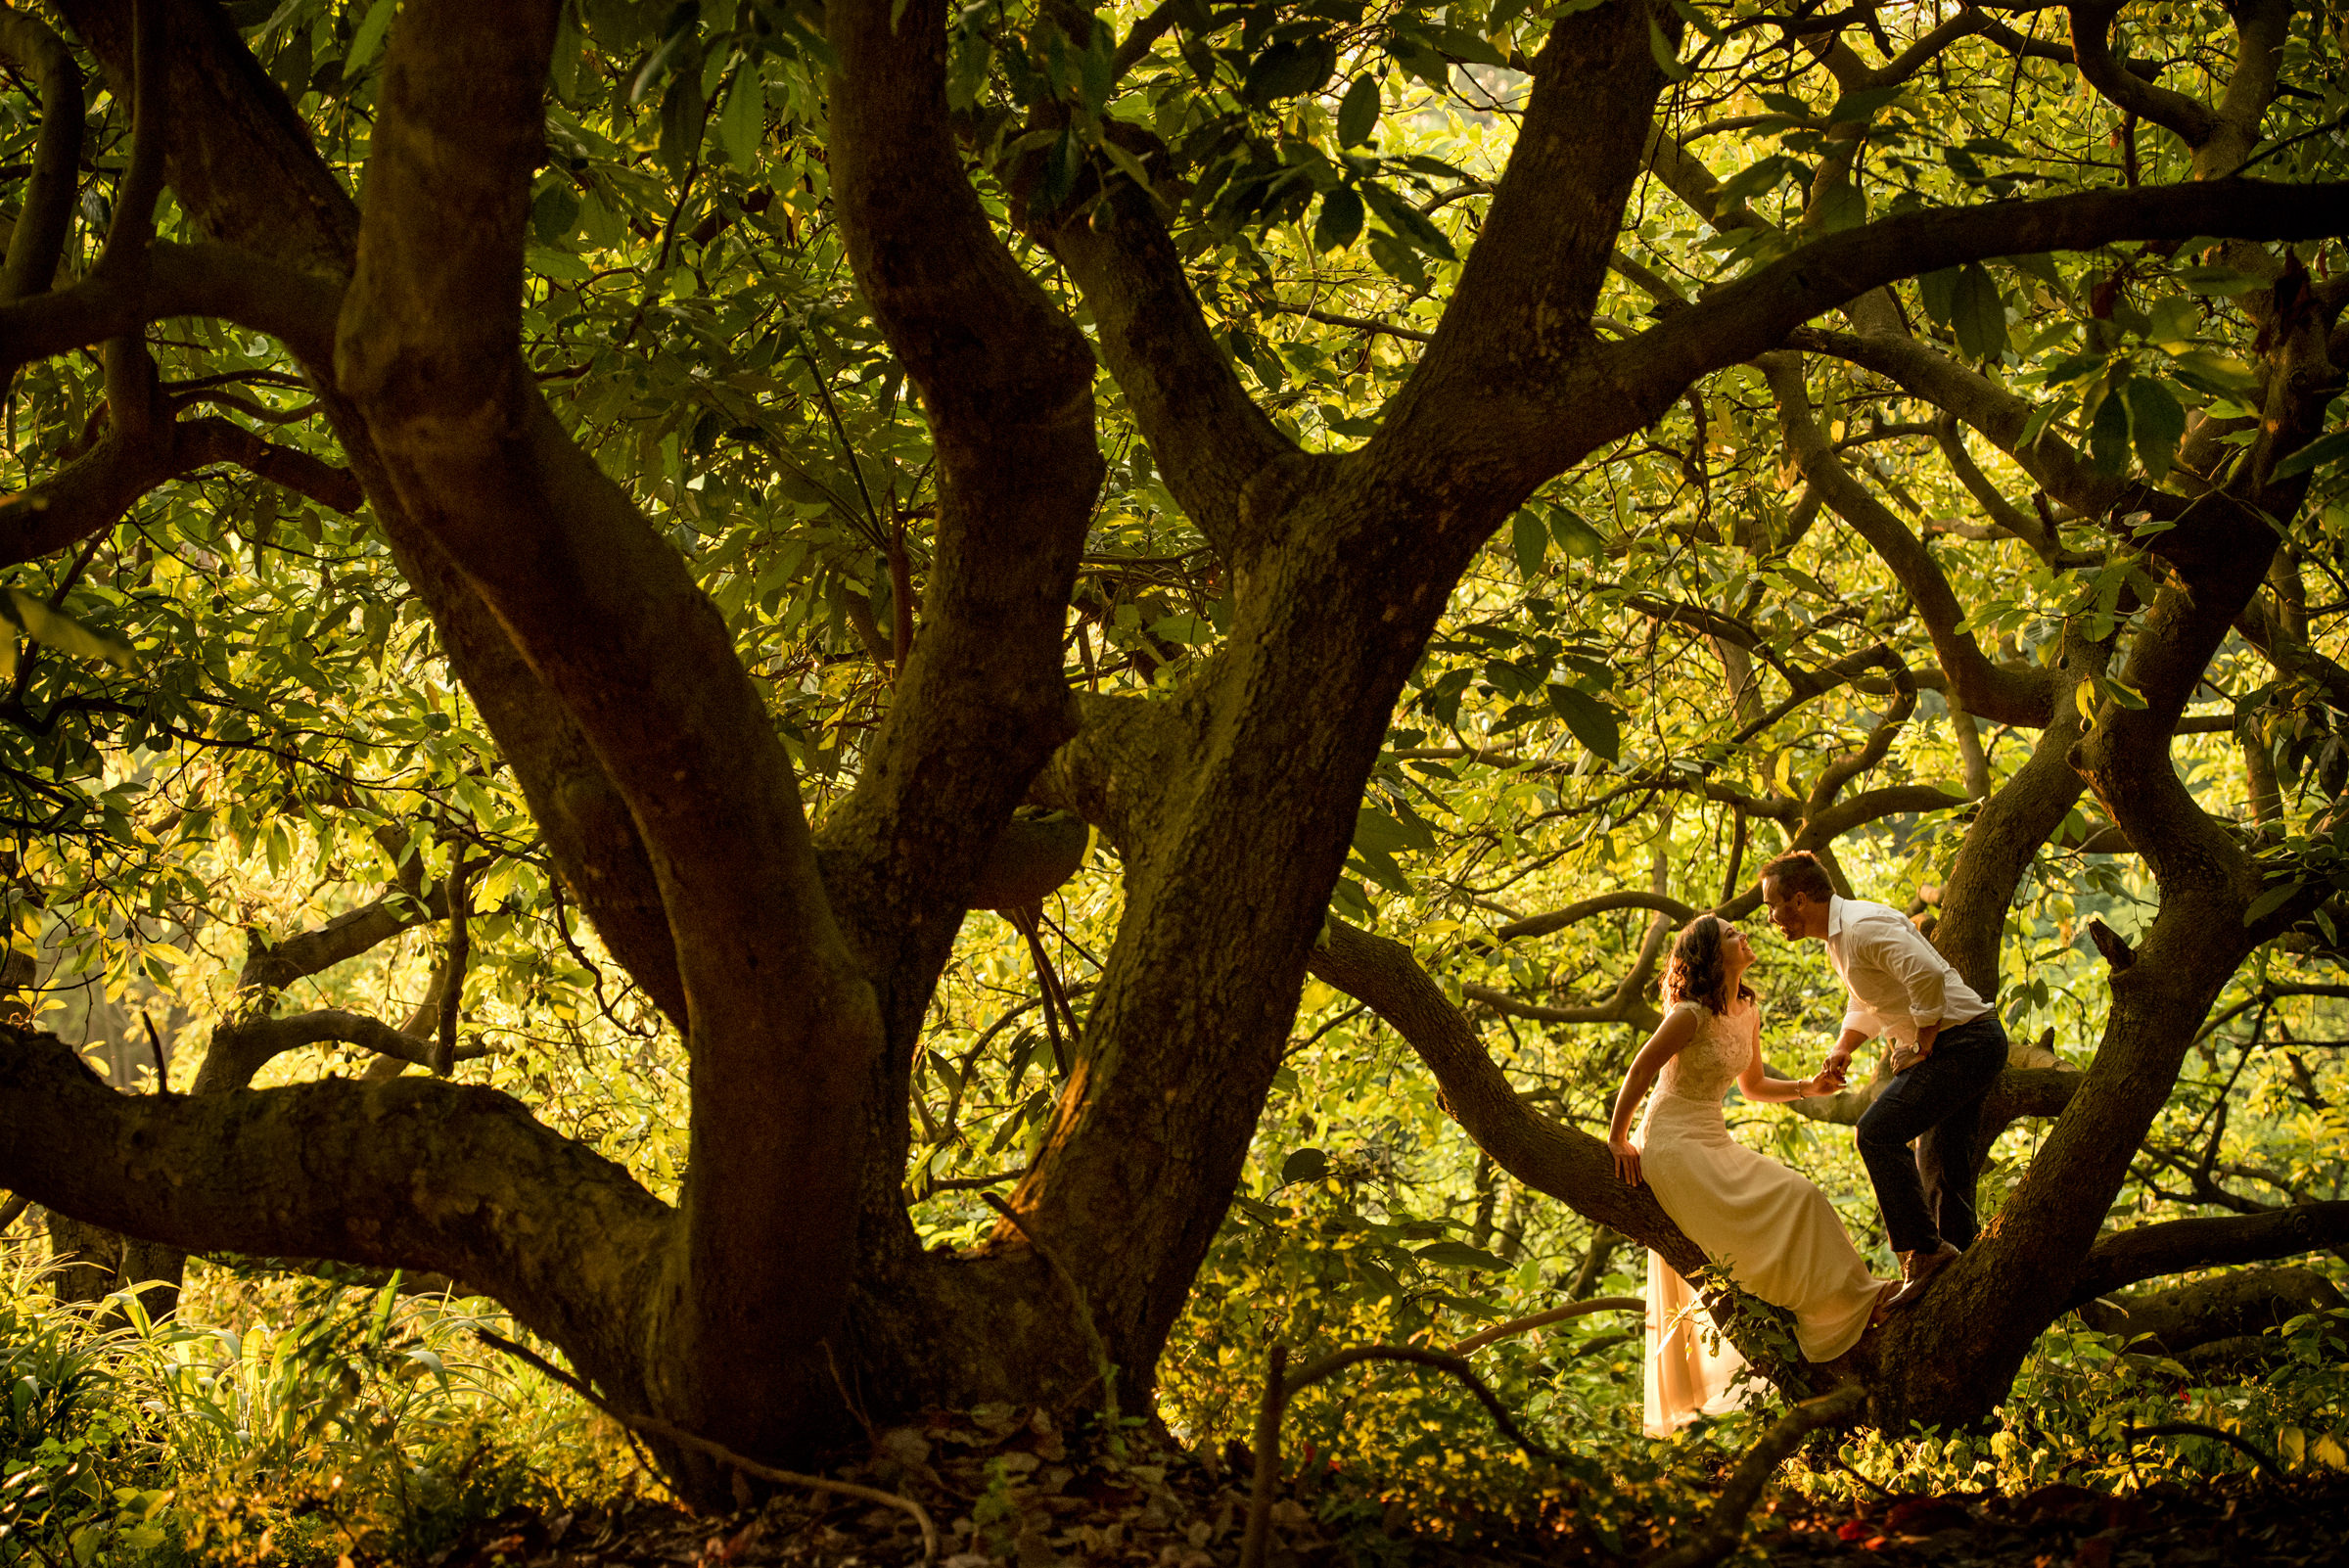 Couple kisses in beautifully lit Banyan tress - photo by Jacki Bruniquel